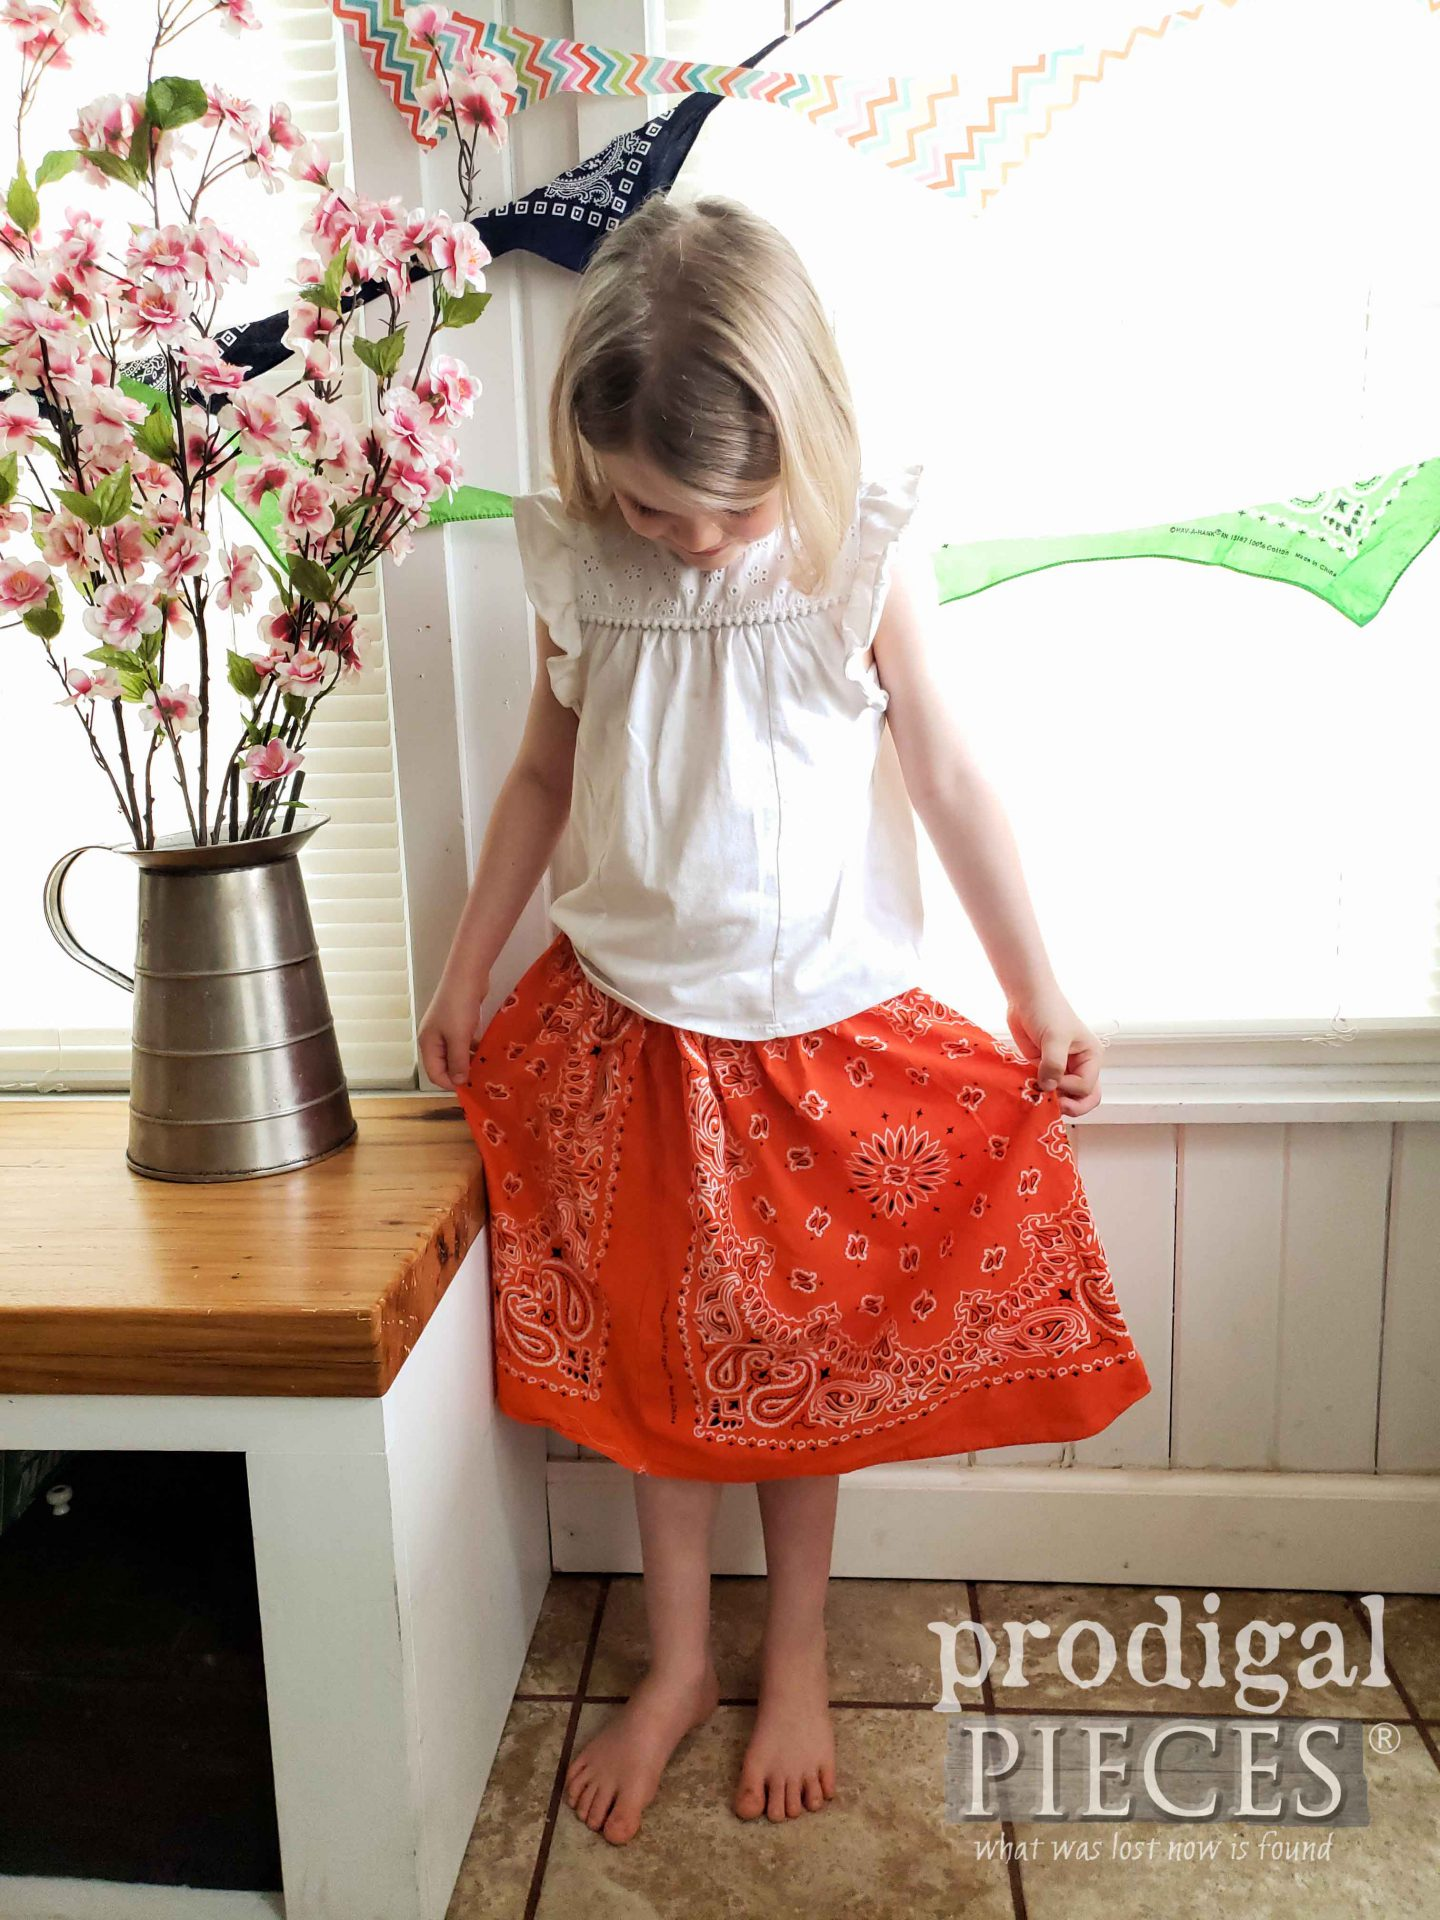 Handmade Bandana Skirt for Girls Tutorial by Larissa of Prodigal Pieces | prodigalpieces.com #prodigalpieces #diy #kids #handmade #clothes #fashion